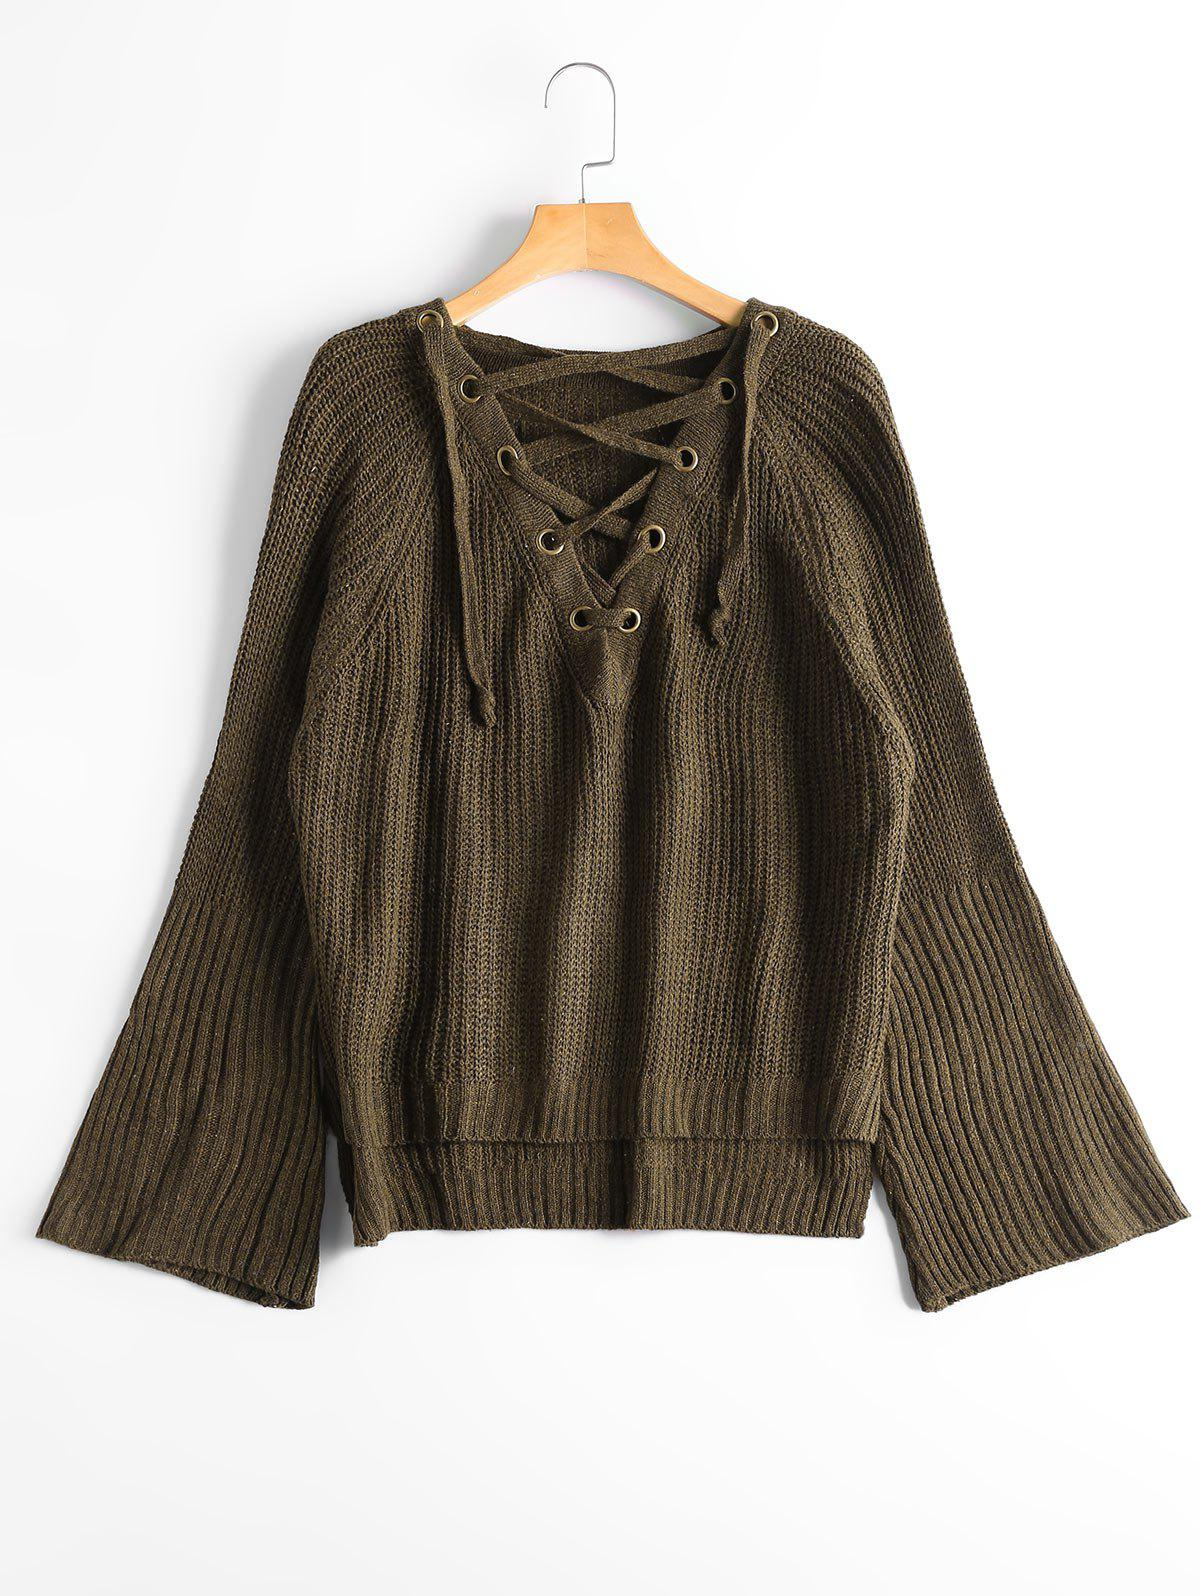 Lace Up Flare Sleeve High Low Sweater - ARMY GREEN ONE SIZE